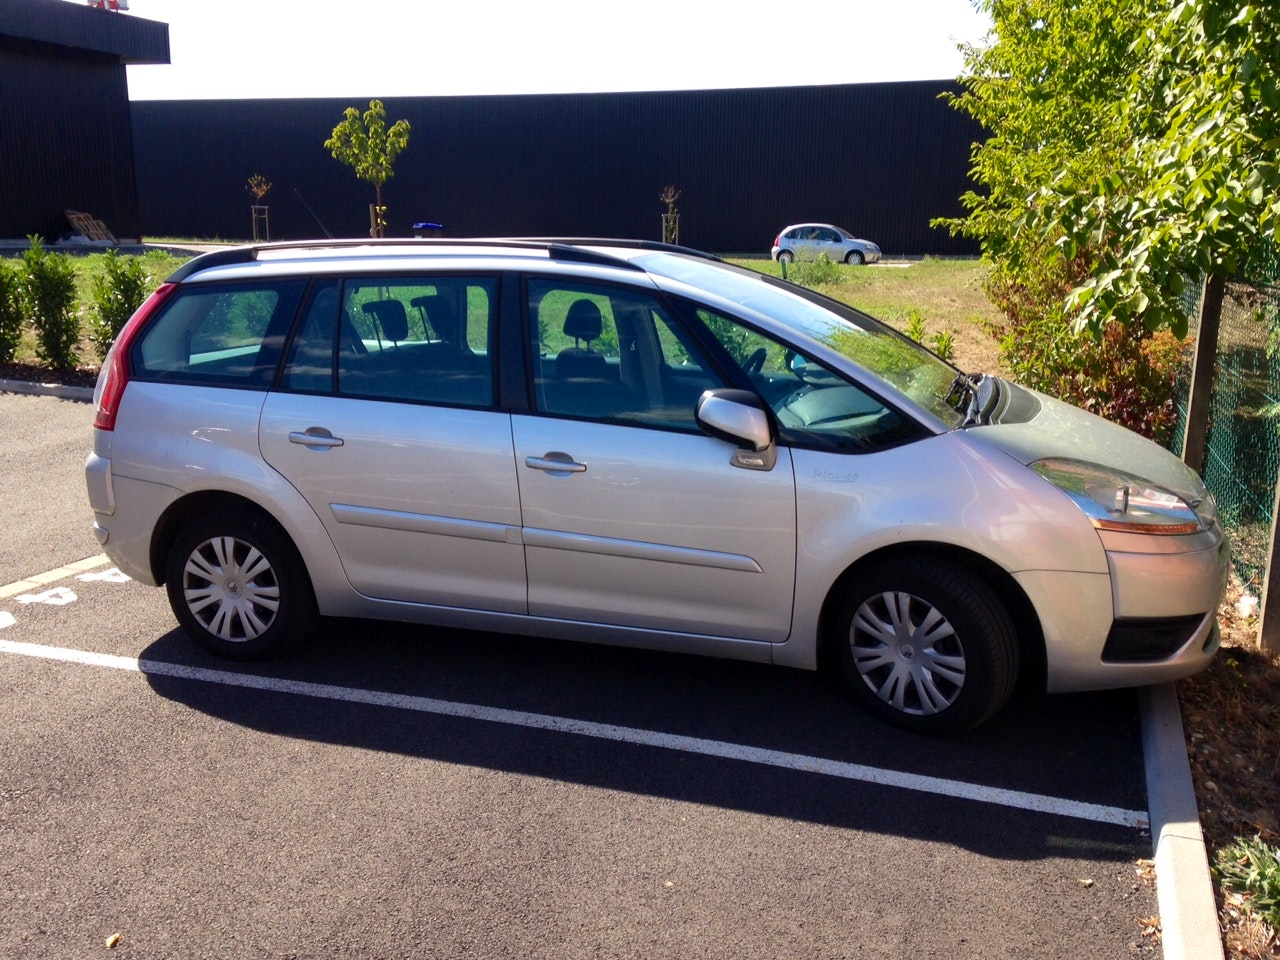 Citroen Grand C4, 2009, Diesel, 7 places